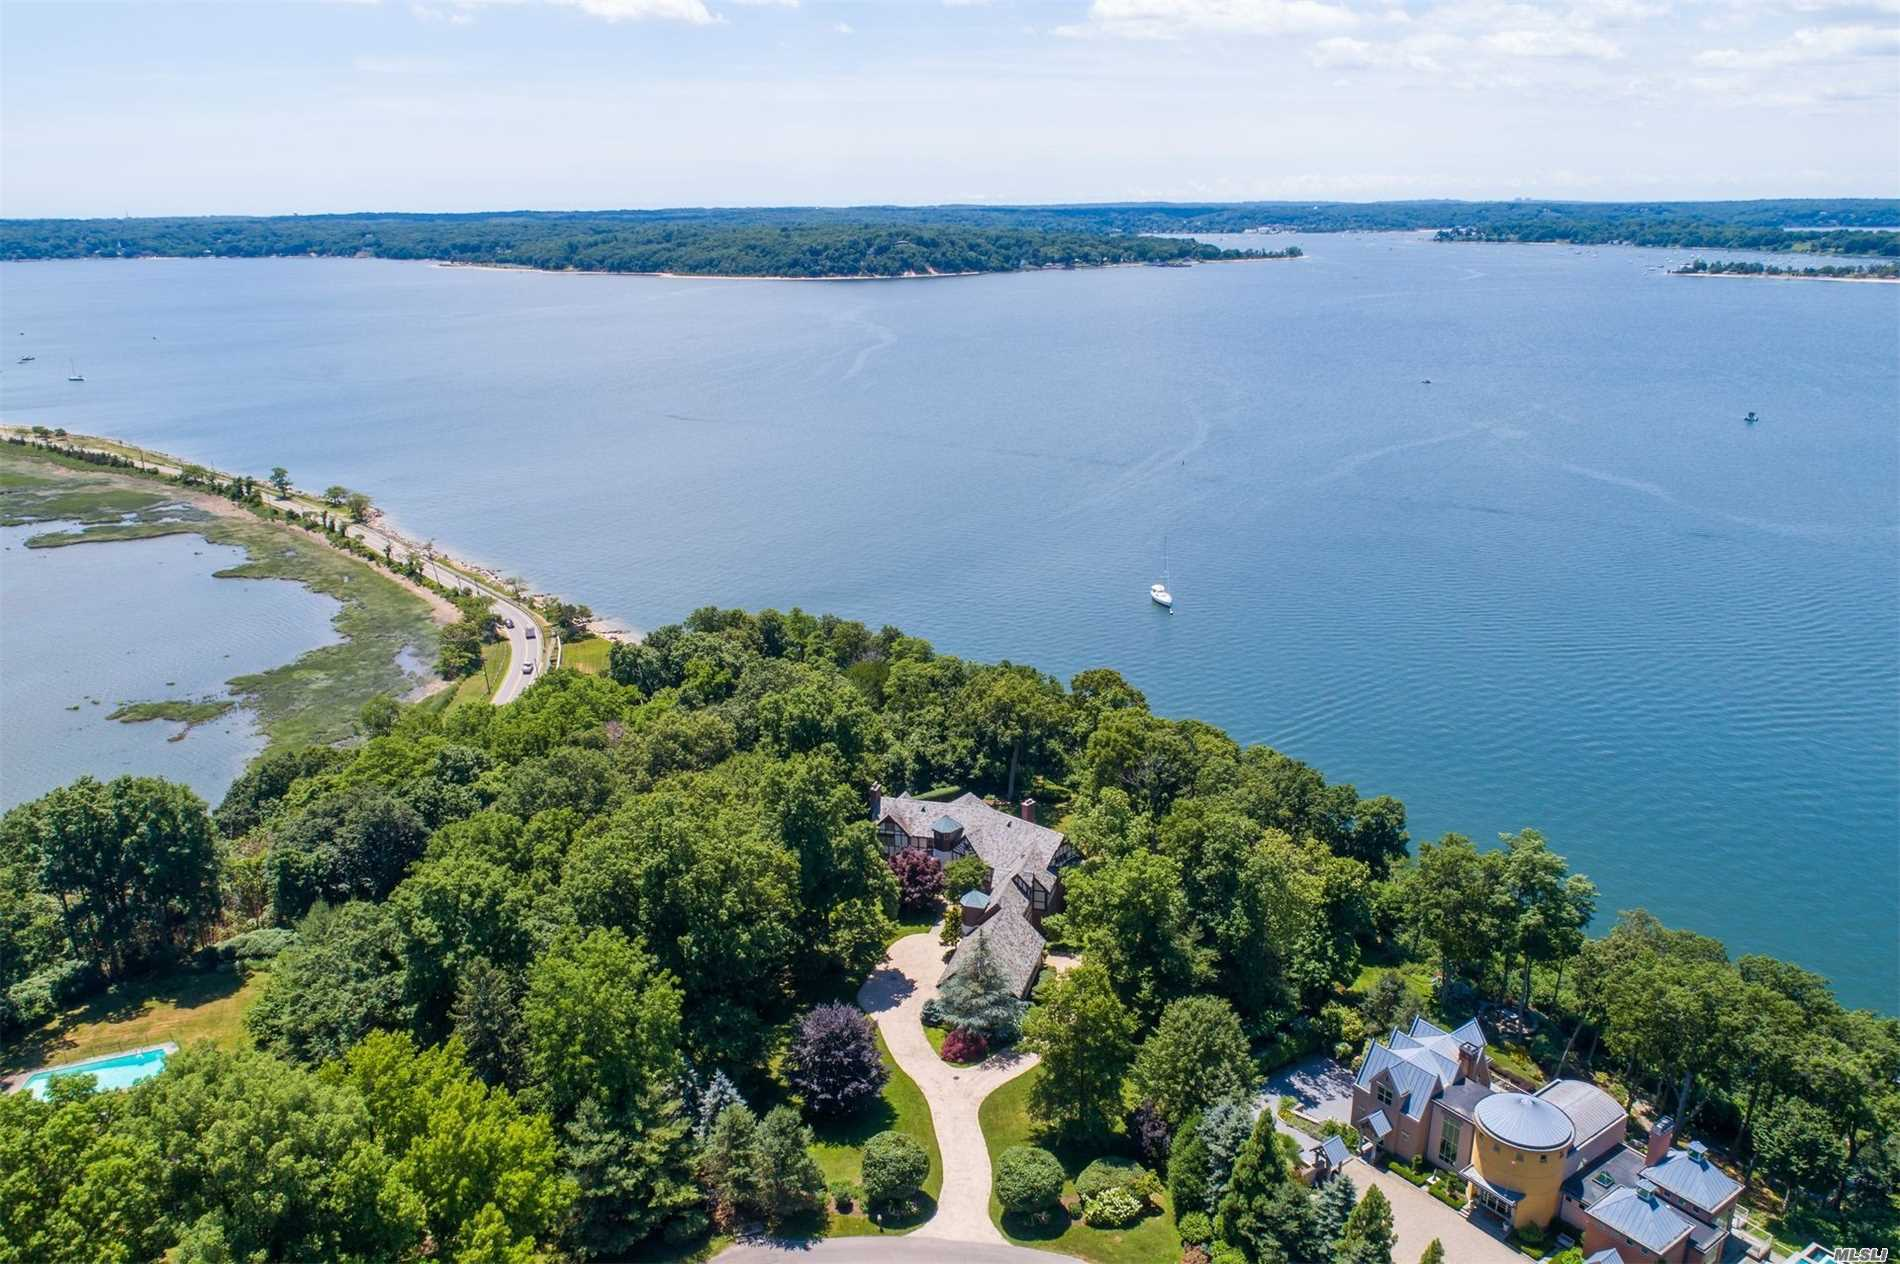 Enjoy Sunsets All Year Long From This Custom Built Waterfront Home (1997) A Fabulous Hampton Alternative! 1 Hour From Manhattan. Spectacular Panoramic Vista To Centre Island And Connecticut. Fort Hill Membership Dues $1, 800 Per Year Includes Beach, Mooring And Tennis.